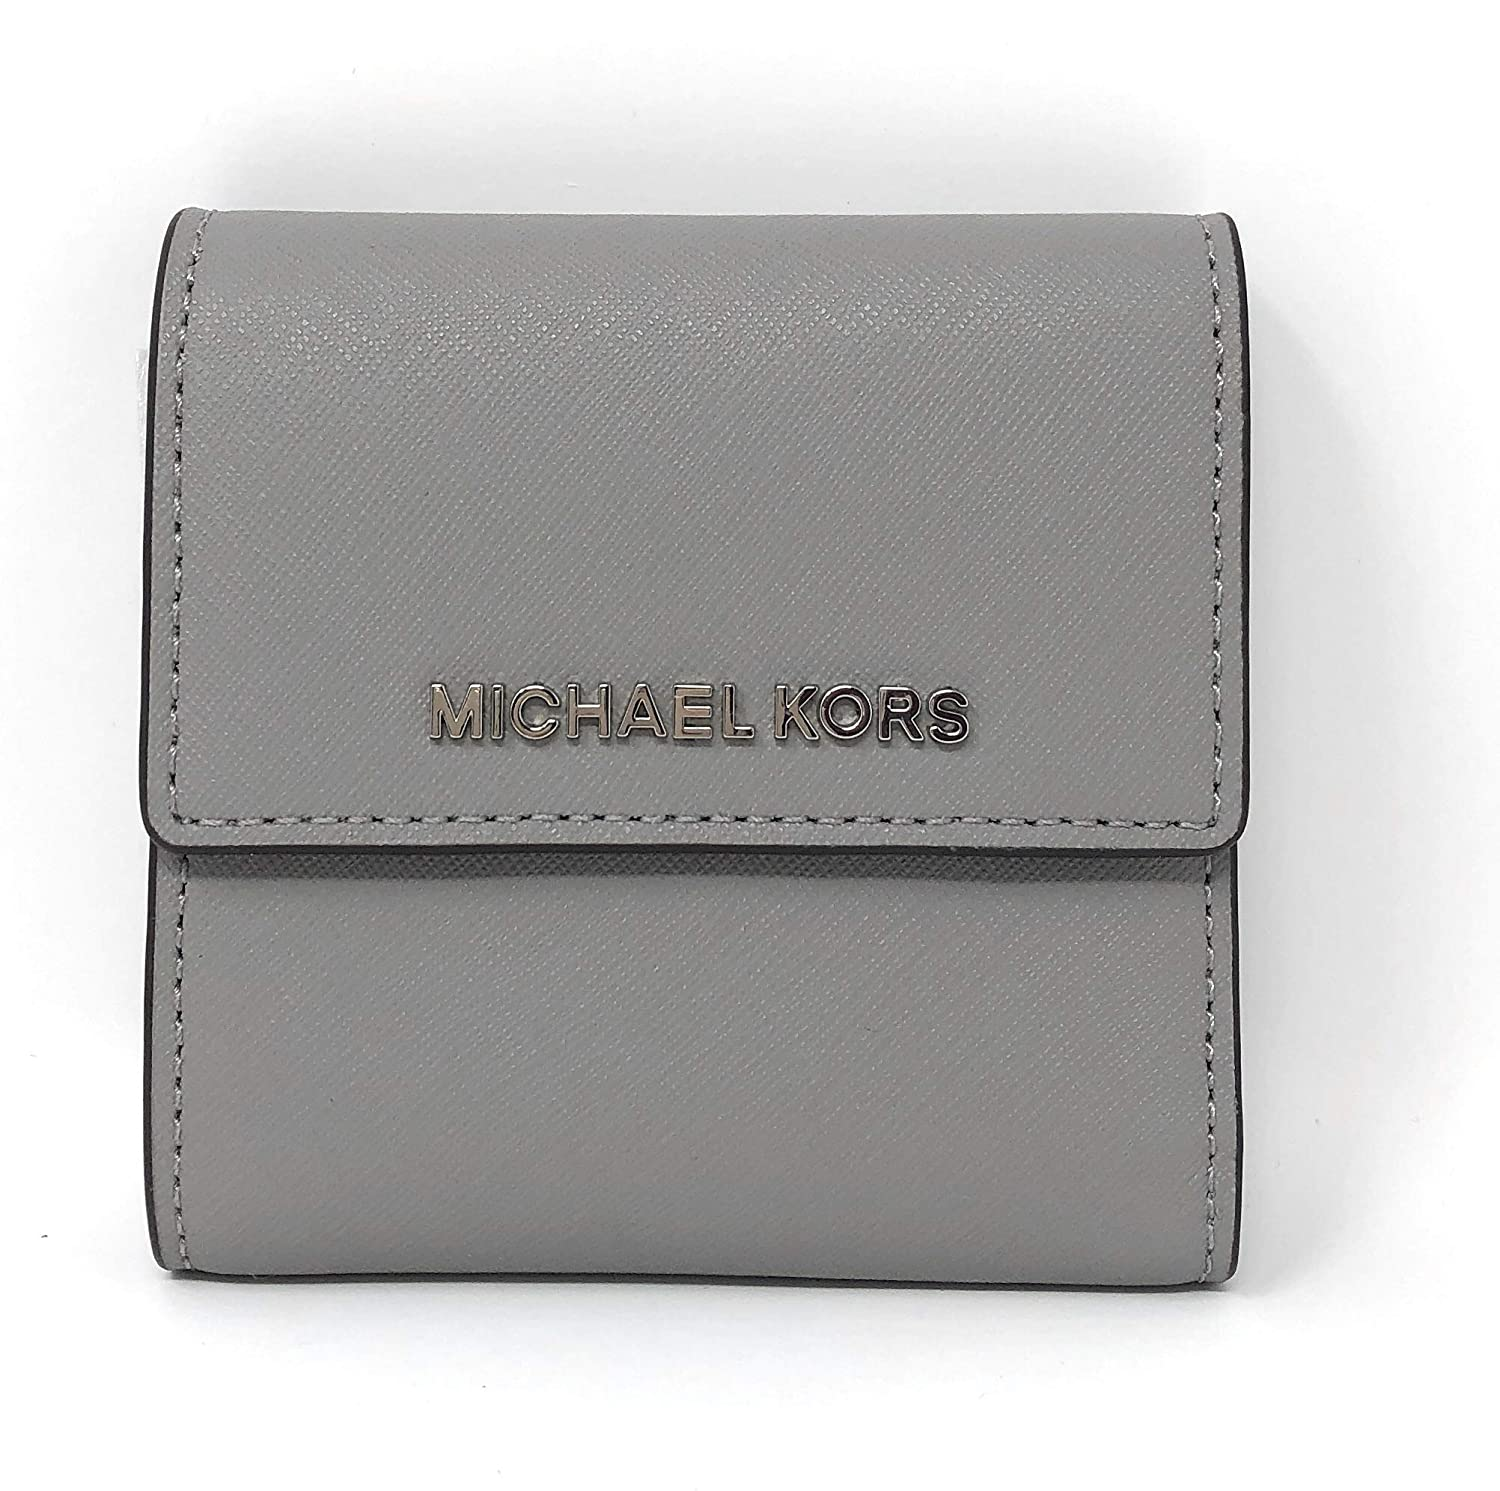 42a45f17a9d3 Amazon.com  Michael Kors Jet Set Travel Small Card Case Trifold Carryall Leather  Wallet (Ash Grey)  Shoes